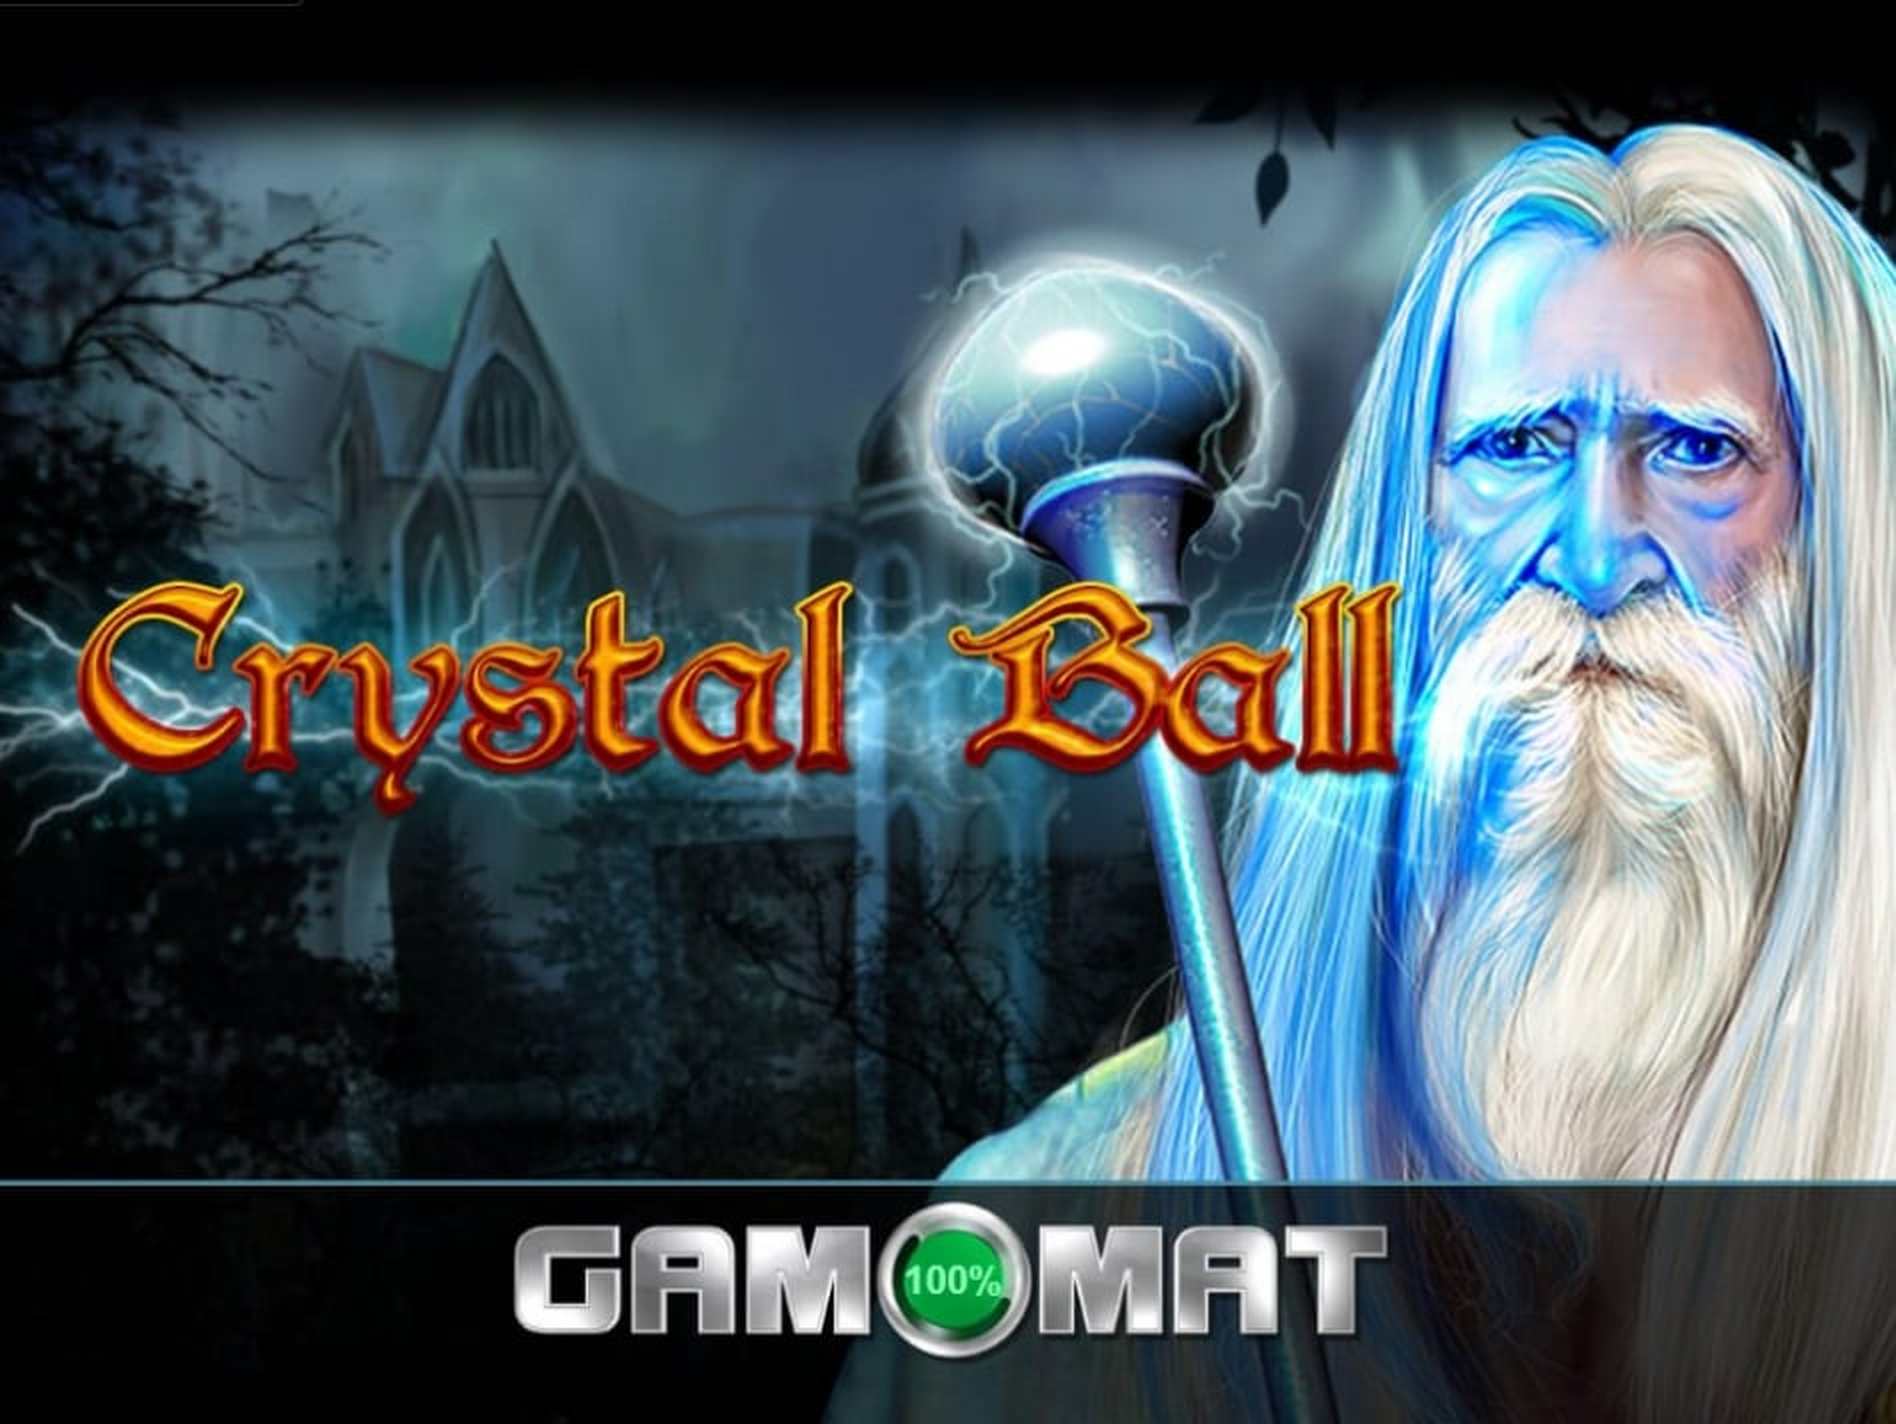 The Crystal Ball Online Slot Demo Game by Gamomat